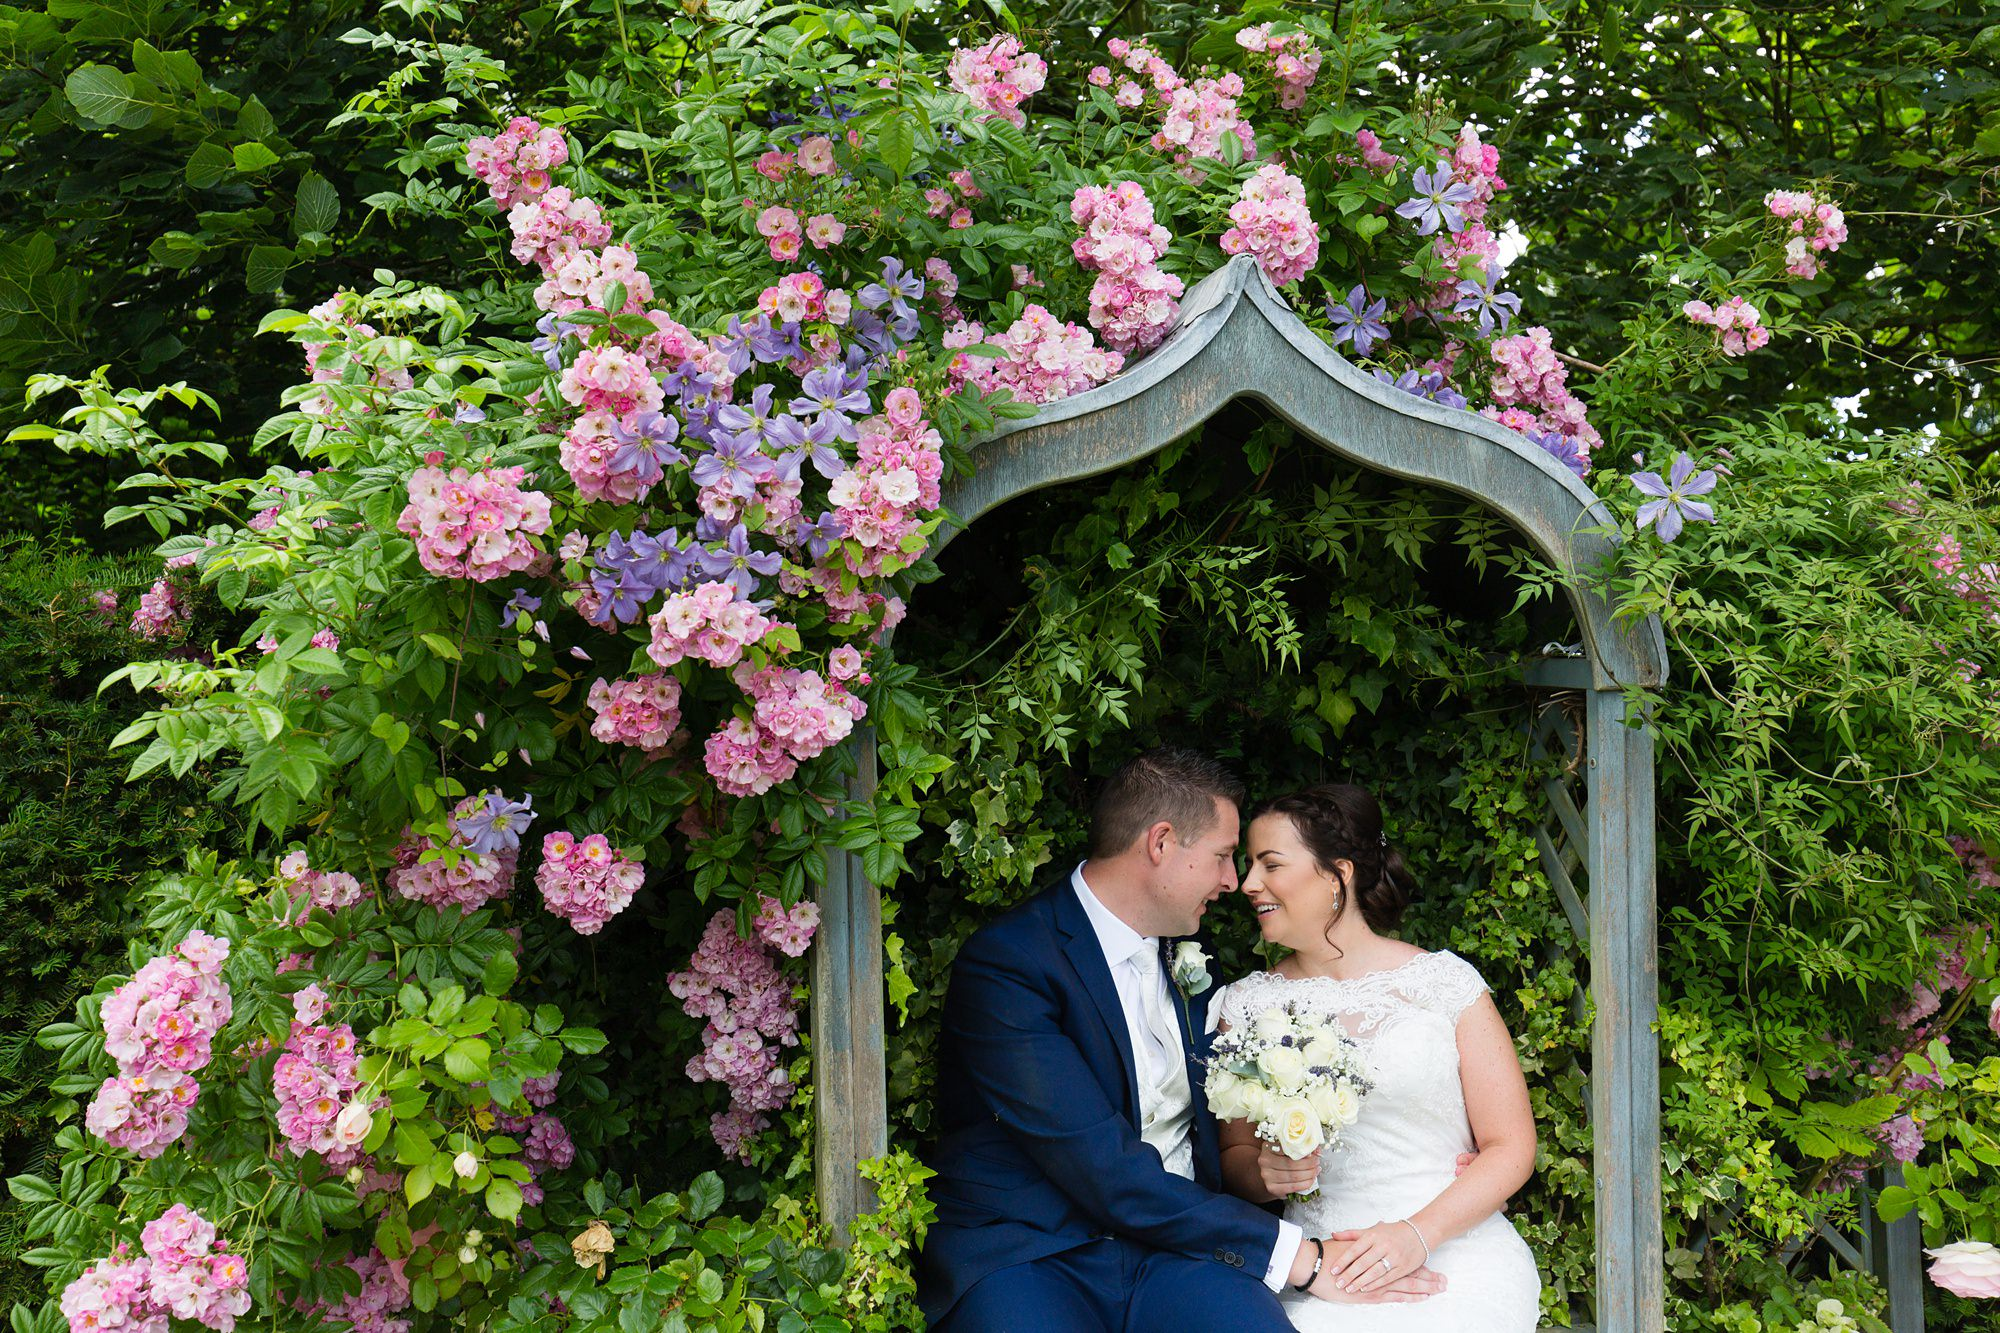 Bell Hall Wedding Photography brid eand groom cuddling in garden seat surrounded by hydrangeas